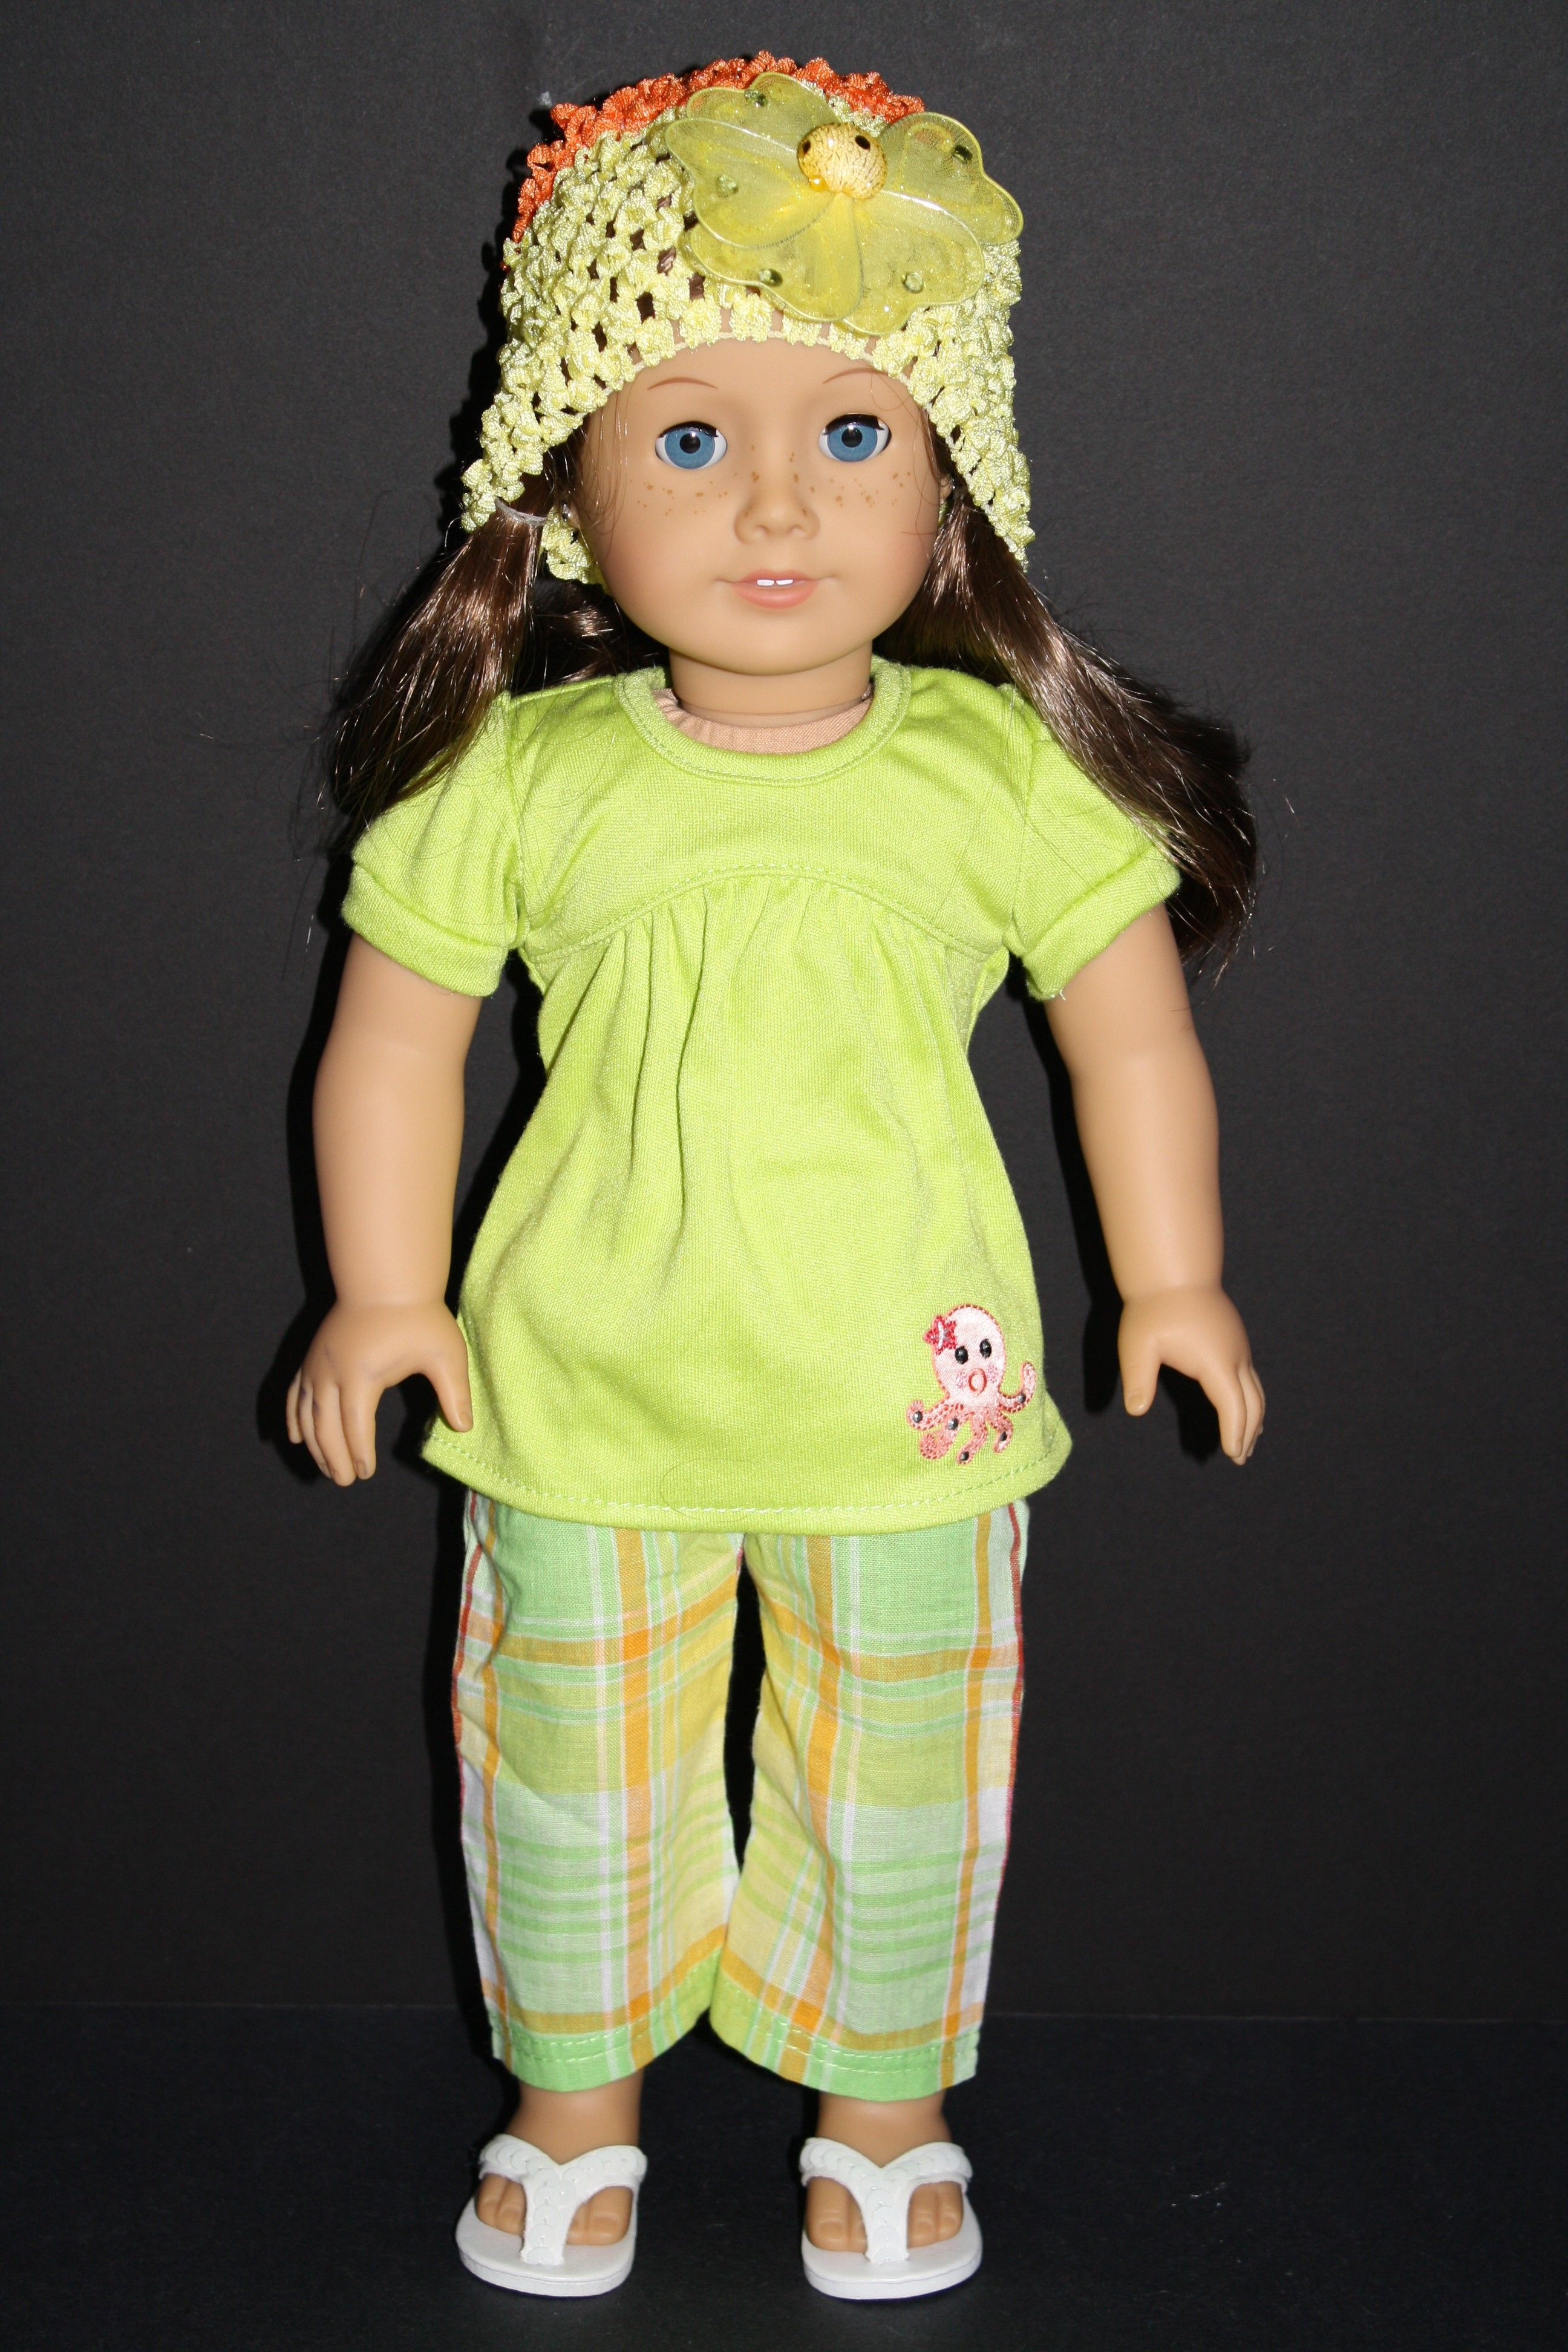 Plaid Capri Pants With Long Green T-Shirt and Hat for American Girl Doll $15.00